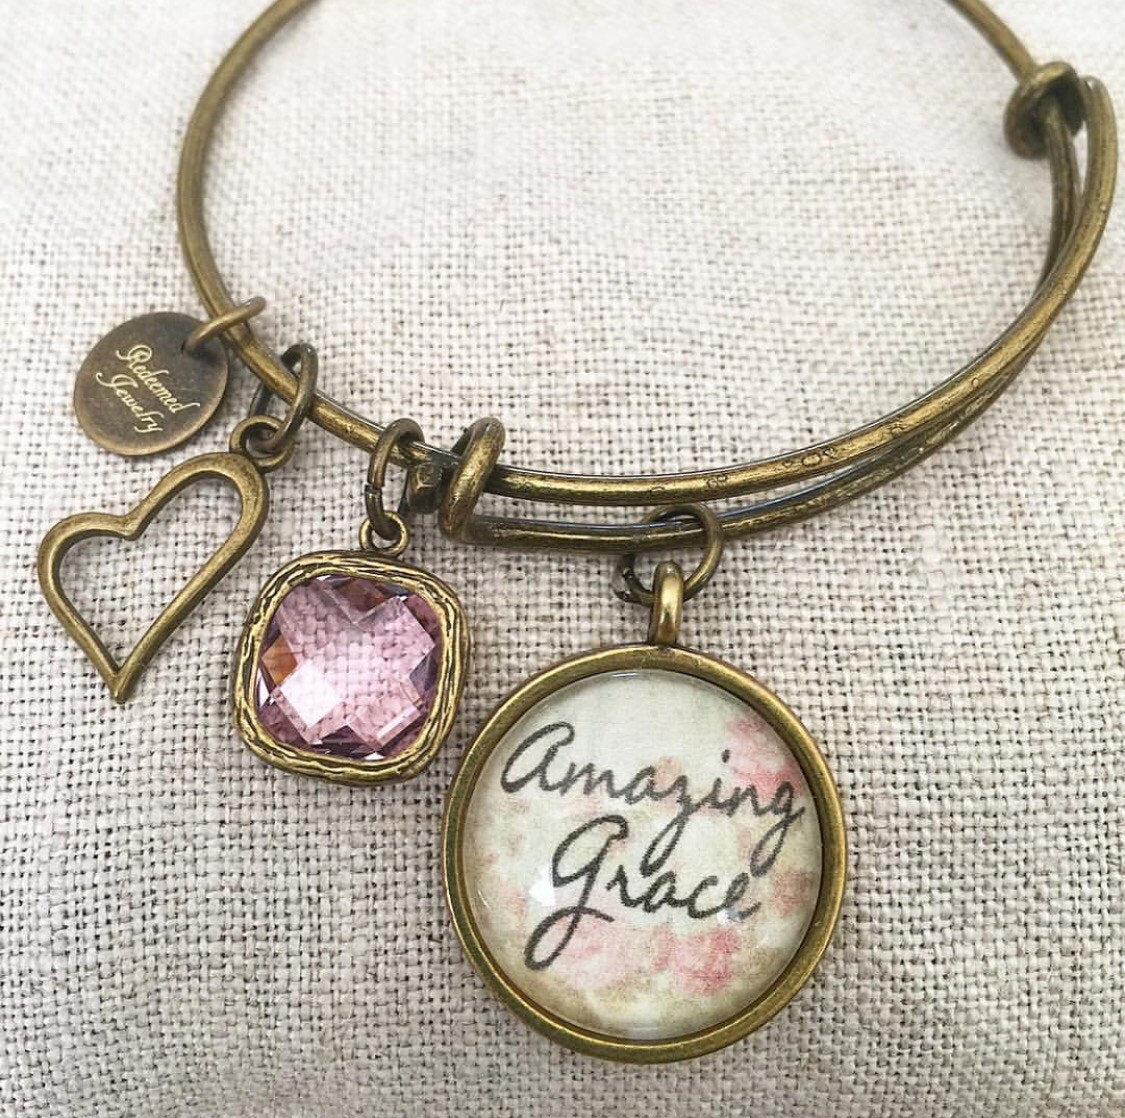 Amazing Grace Bangle Bracelet - Redeemed Jewelry